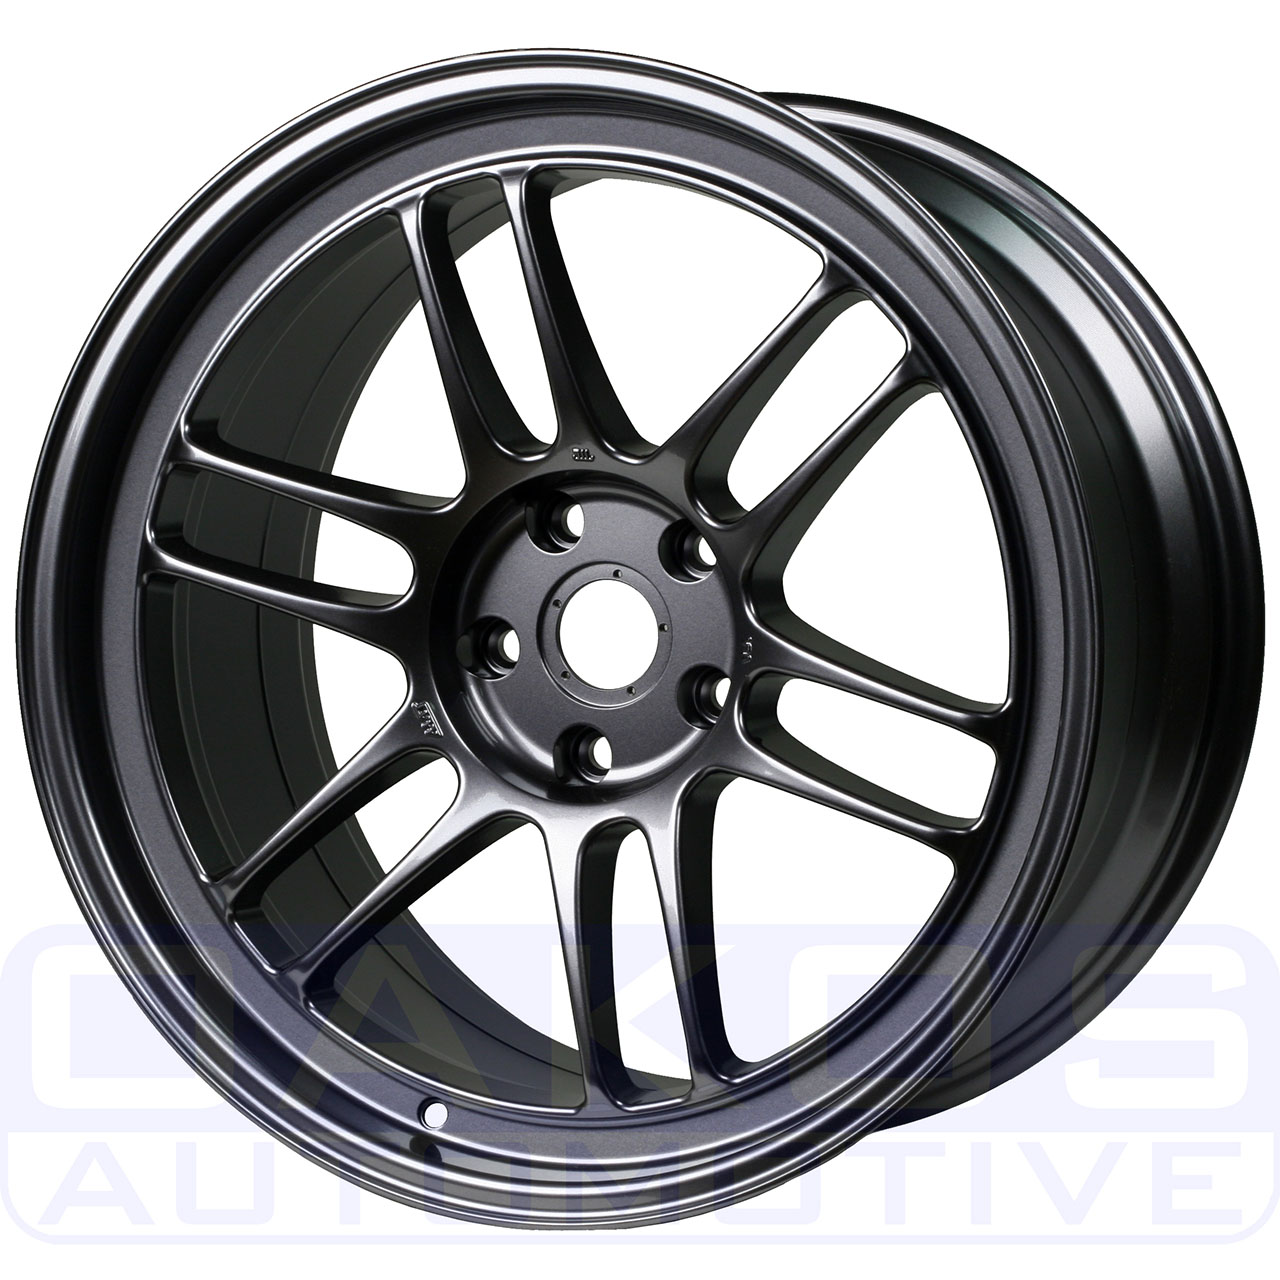 Enkei Rpf1 Wheels 18x8 Quot 35mm 5x100 Set 4 Gunmetal Sale Save 288 Oakos Automotive